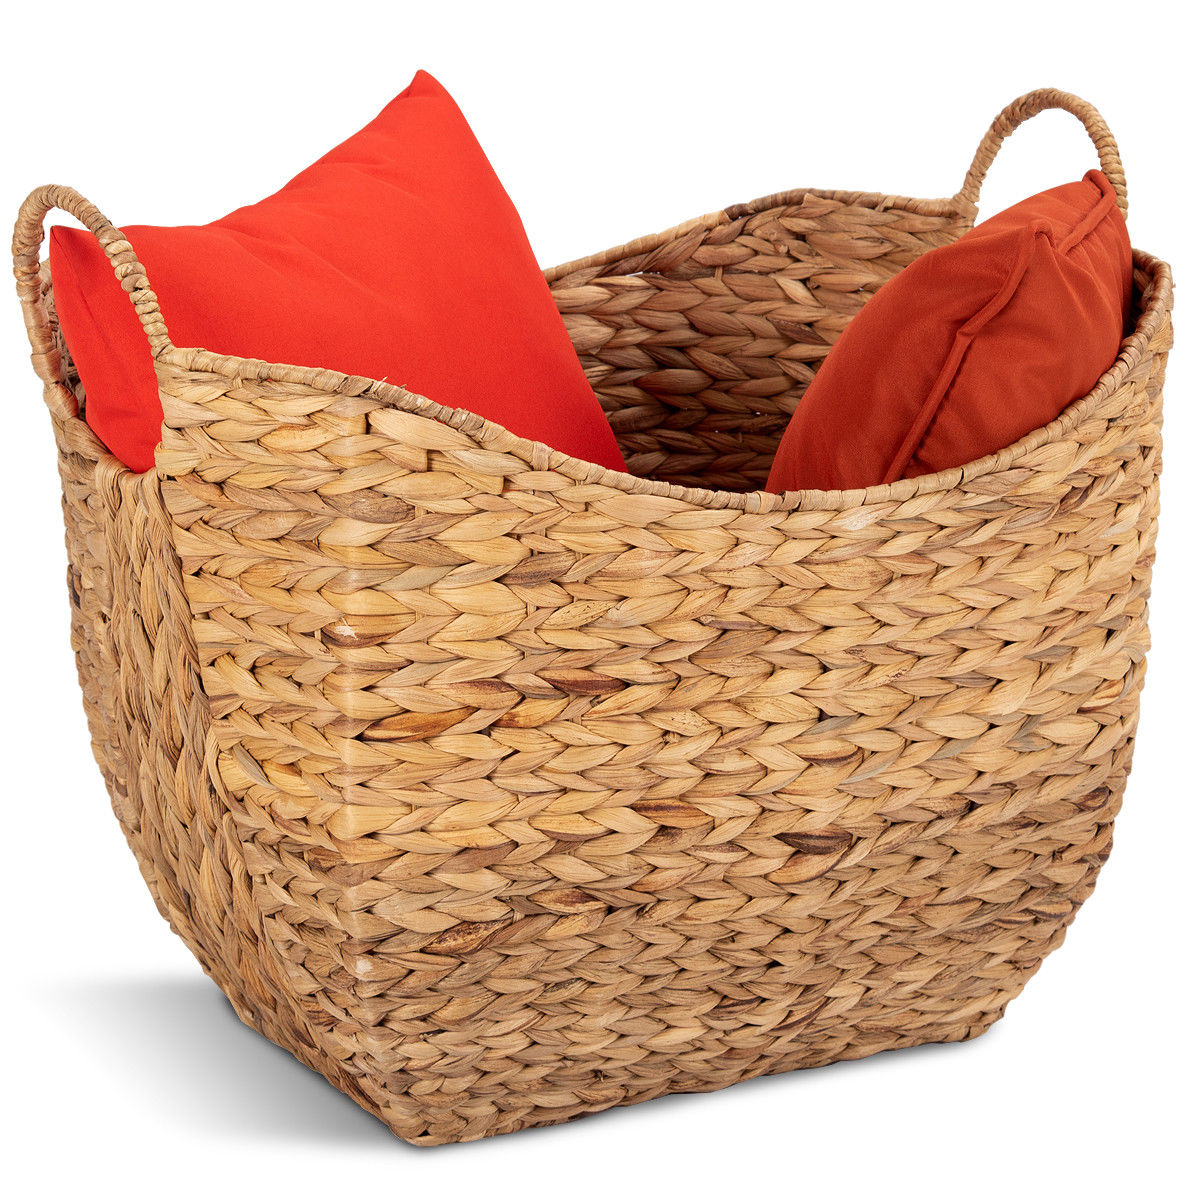 Costway Large Woven Seagrass Storage Basket Wicker Pattern Baskets Handles Organizer